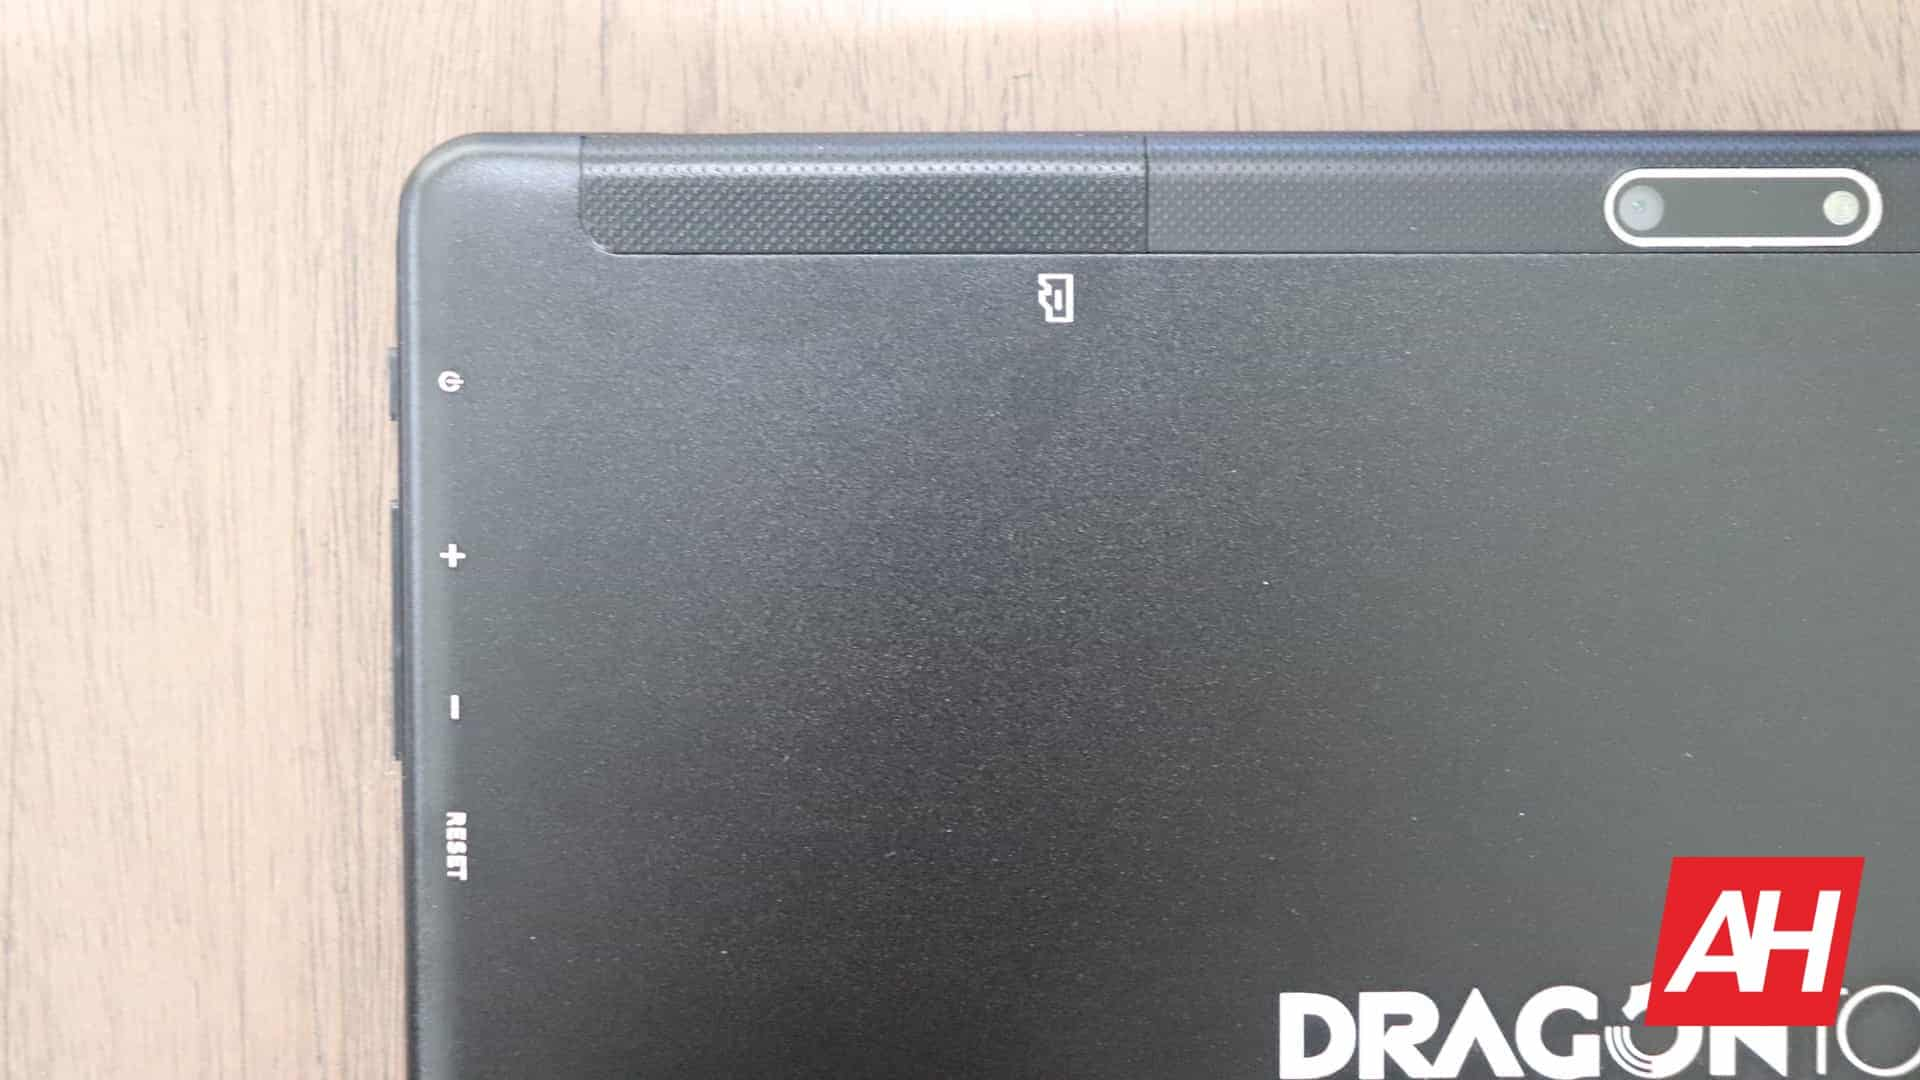 01 0 Dragon Touch Max 10 Tablet Review Hardware AH 2020